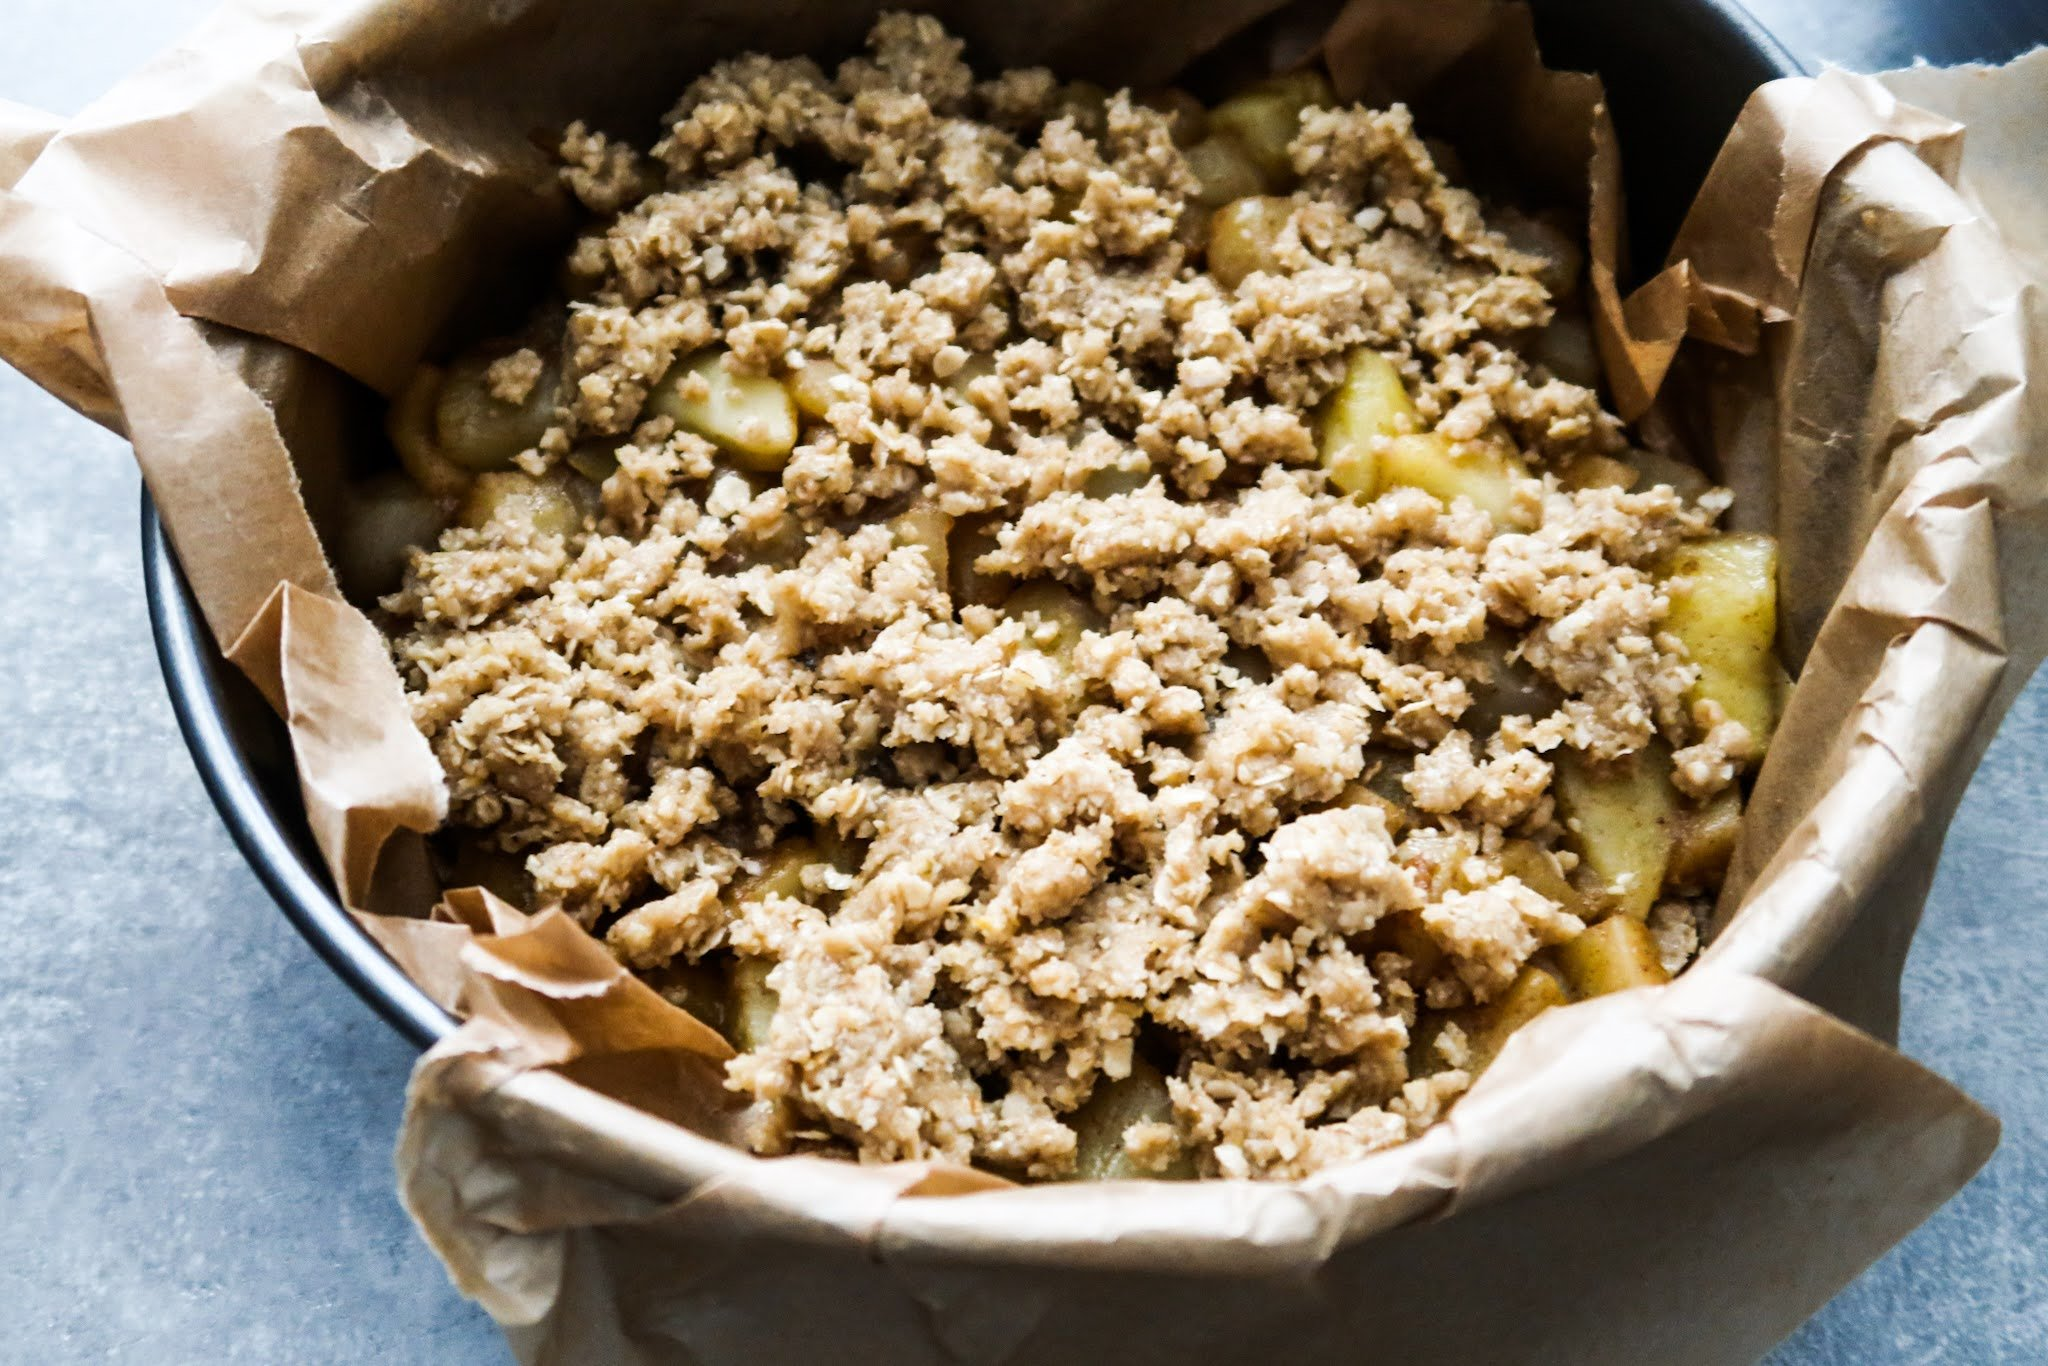 Healthy apple pie crumble recipe! This easy apple crumble pie is made with oats, honey and apples - no refined sugar or flour! This is a vegan apple pie that everyone will love!